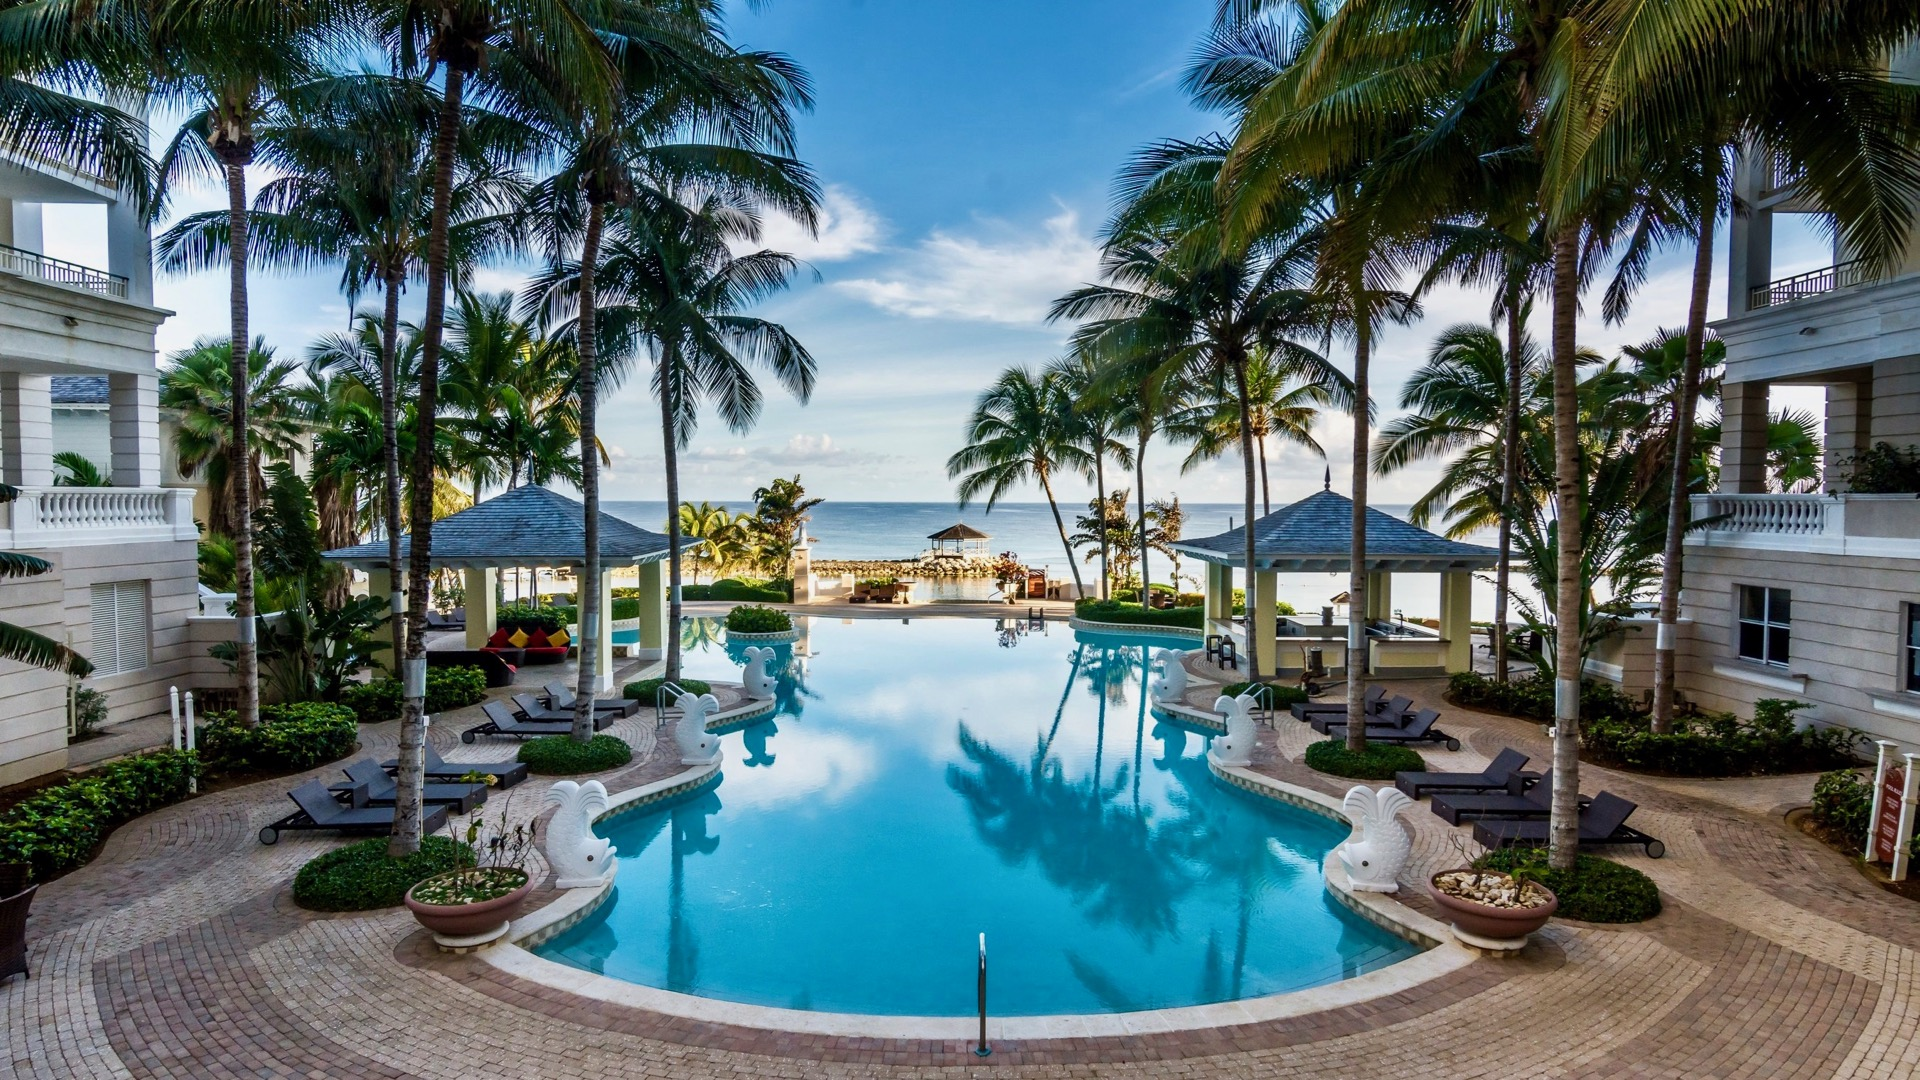 Experience total tranquility in a serene setting at Grande Spa, a brand new two-story, 30,000-square-foot sanctuary of lush tropical gardens, courtyards, terraces and balconies in the Jewel Grande Resort & Spa, Healthy Living + Travel